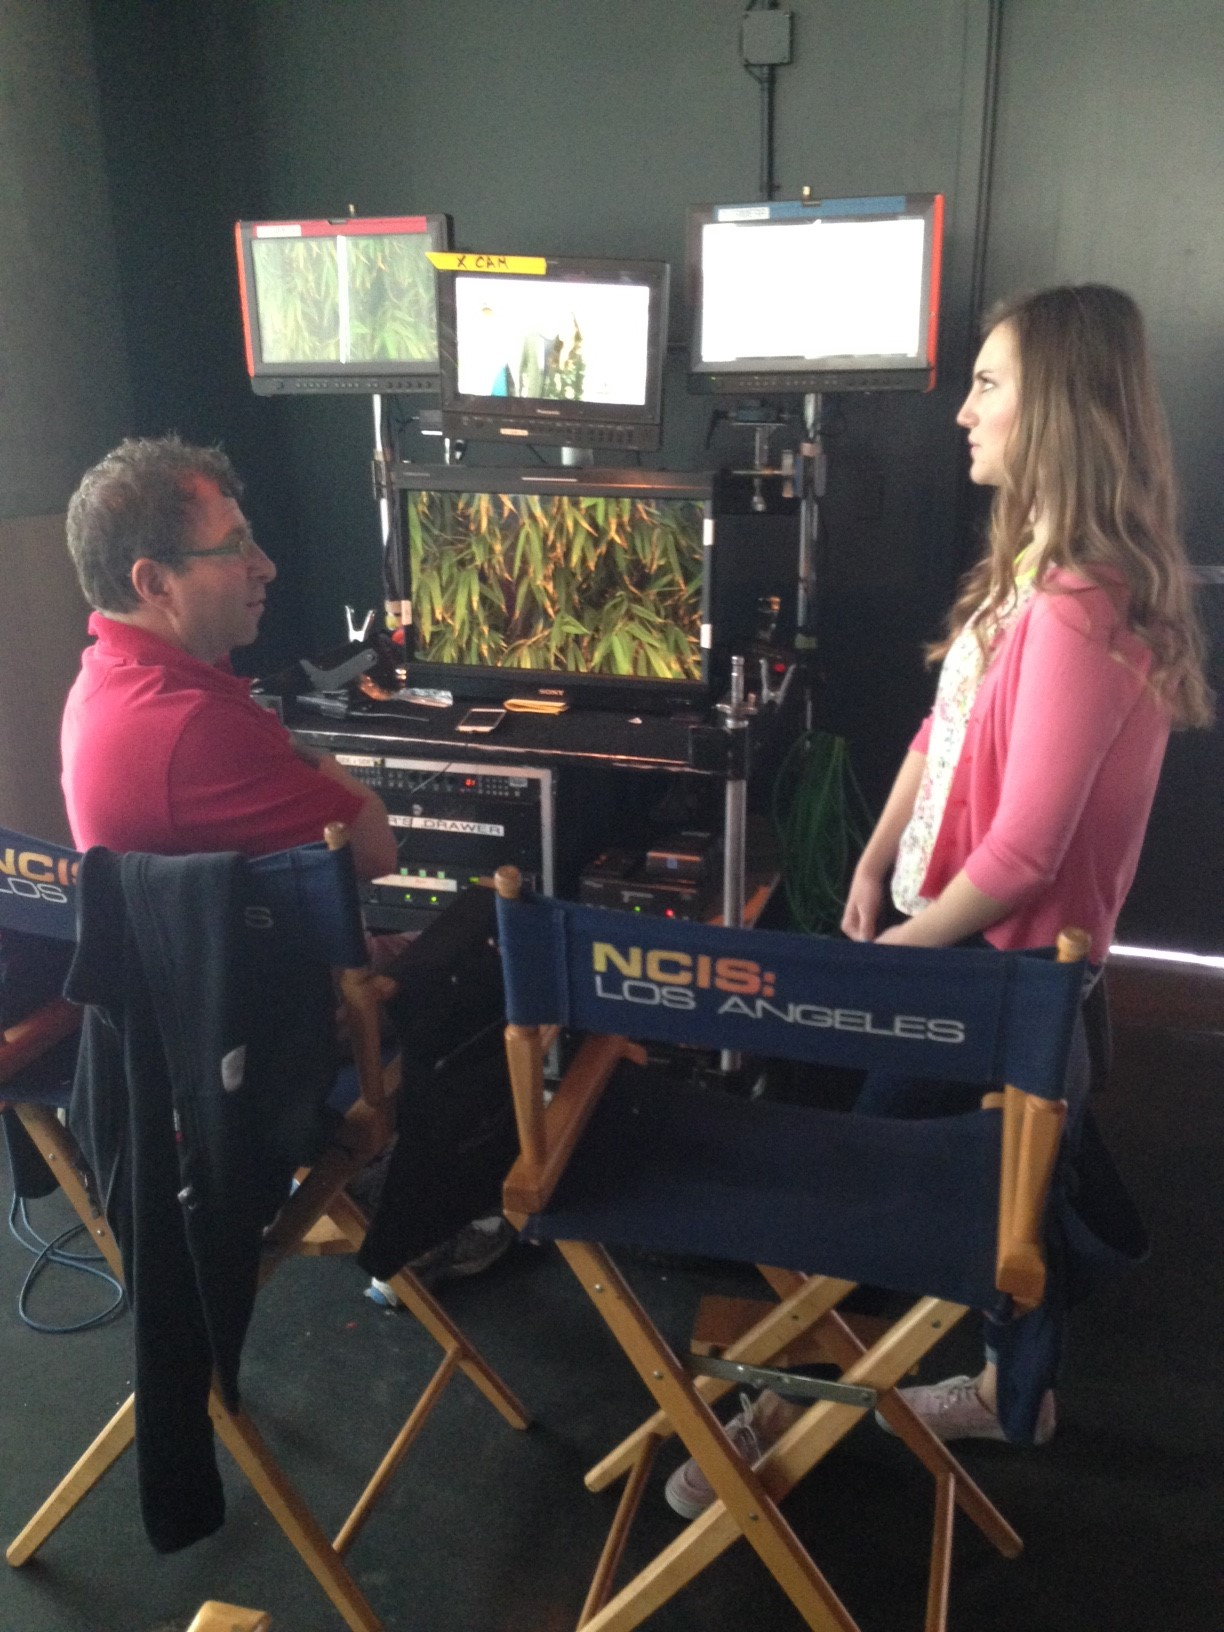 My Week at NCISLA - Day Three